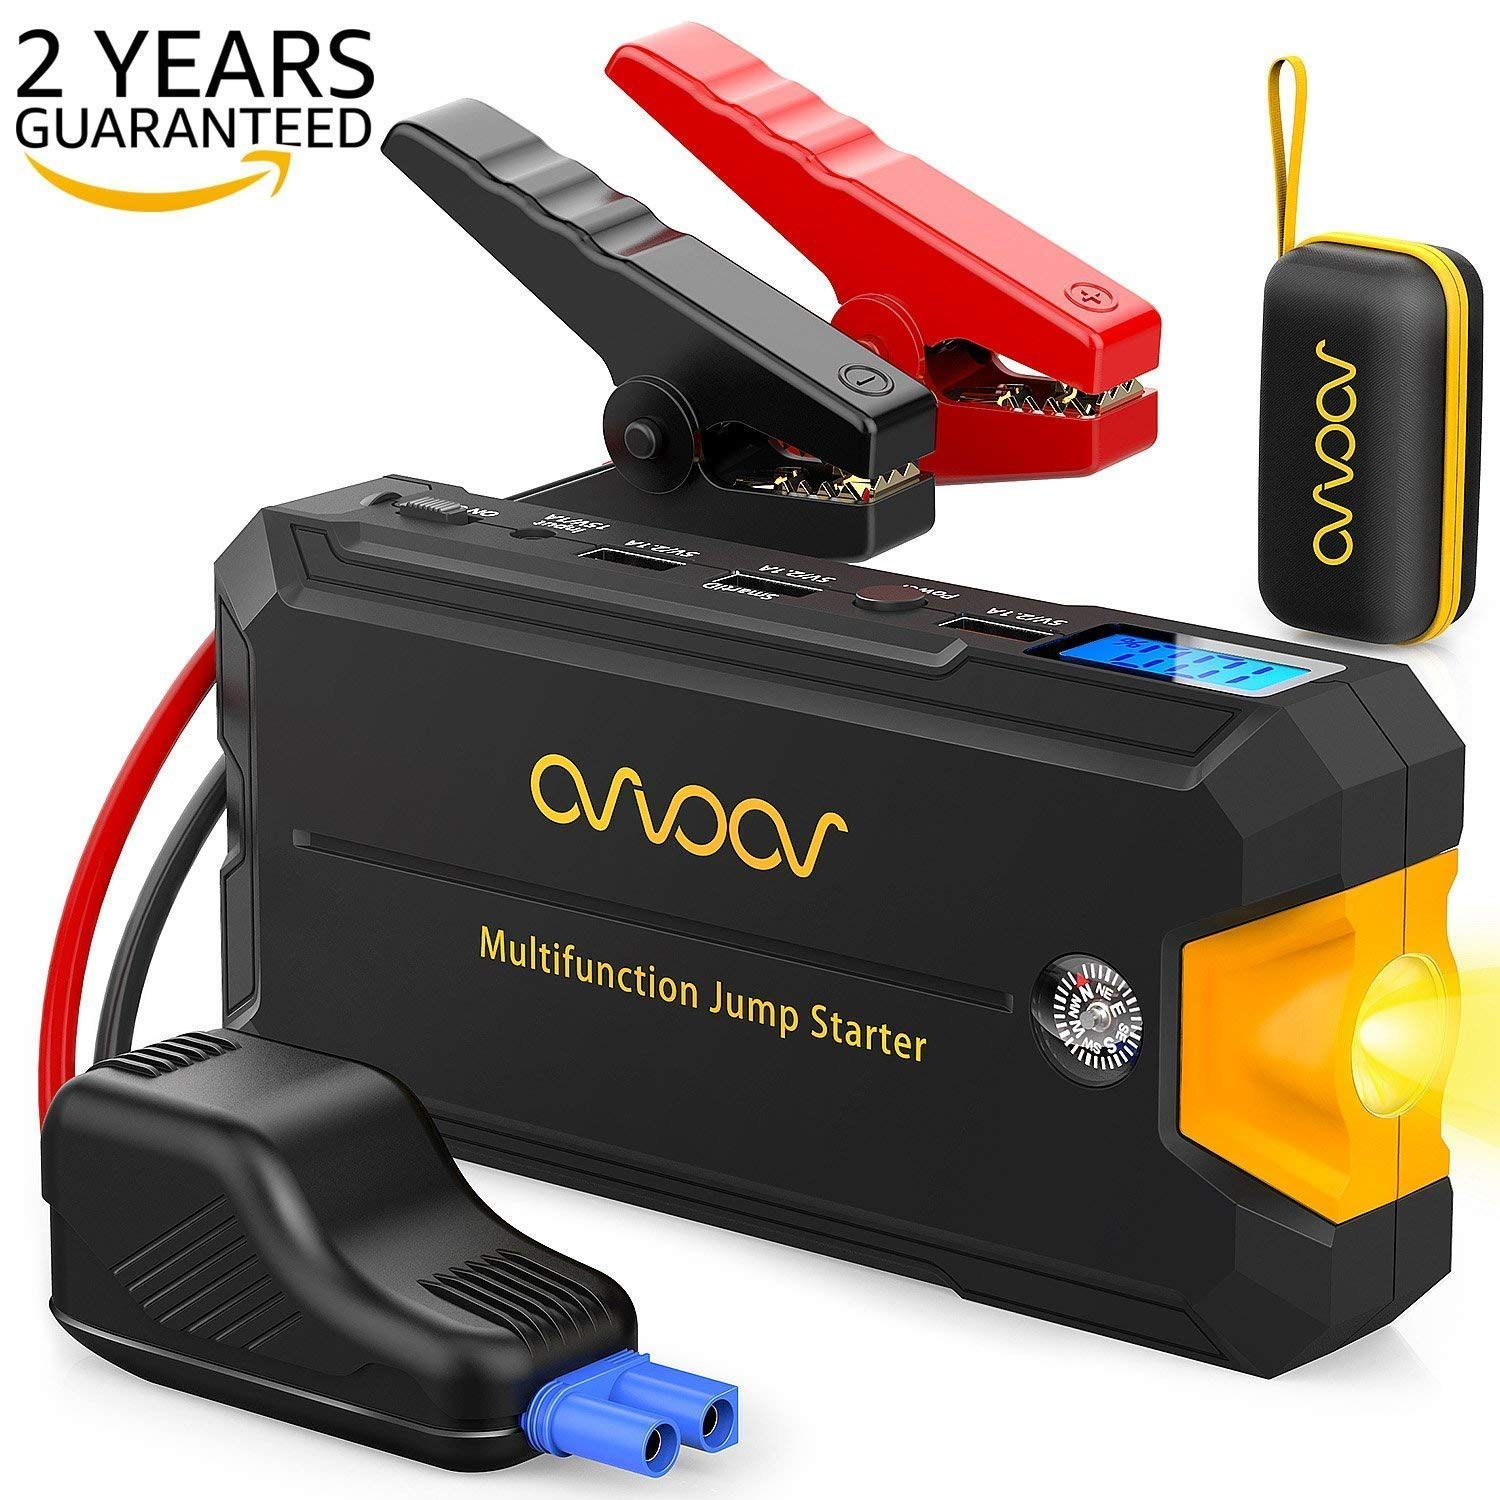 Portable Jump Starter Car Battery Charger, Upgraded 500A-800A Peak (up to 3-5L gas or diesel engine car) 12V Power Pack Battery Booster Power Bank with Smart Charging Port,Compass,LCD Screen OVVOOV